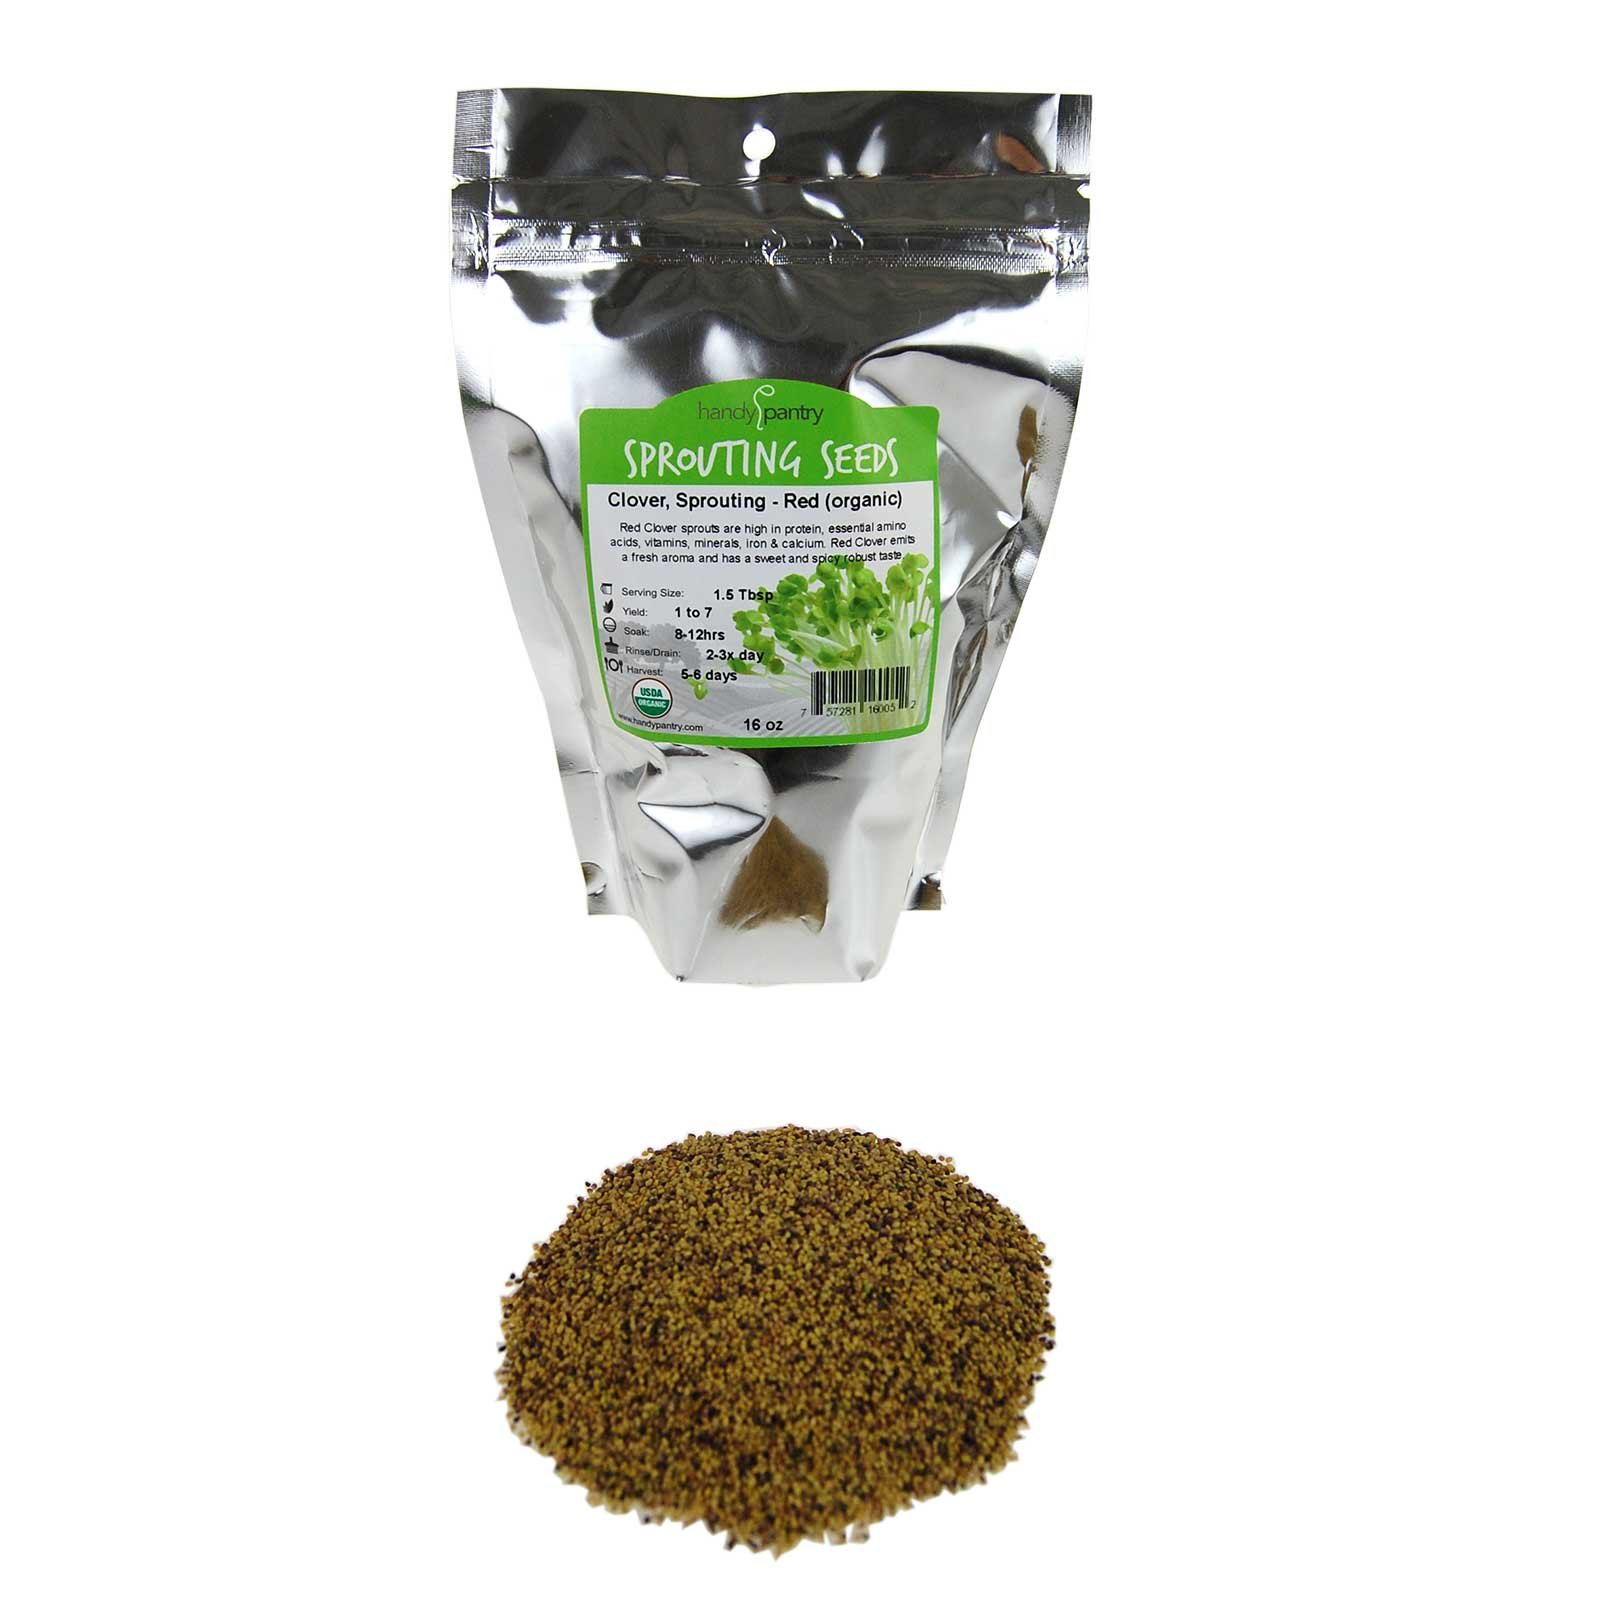 Organic Red Clover Sprouting Seeds by Handy Pantry Brand - 1 Lb Resealable Bag - Sprouts, Microgreens, Gardening, Food Storage, Hydroponics - Edible Seed